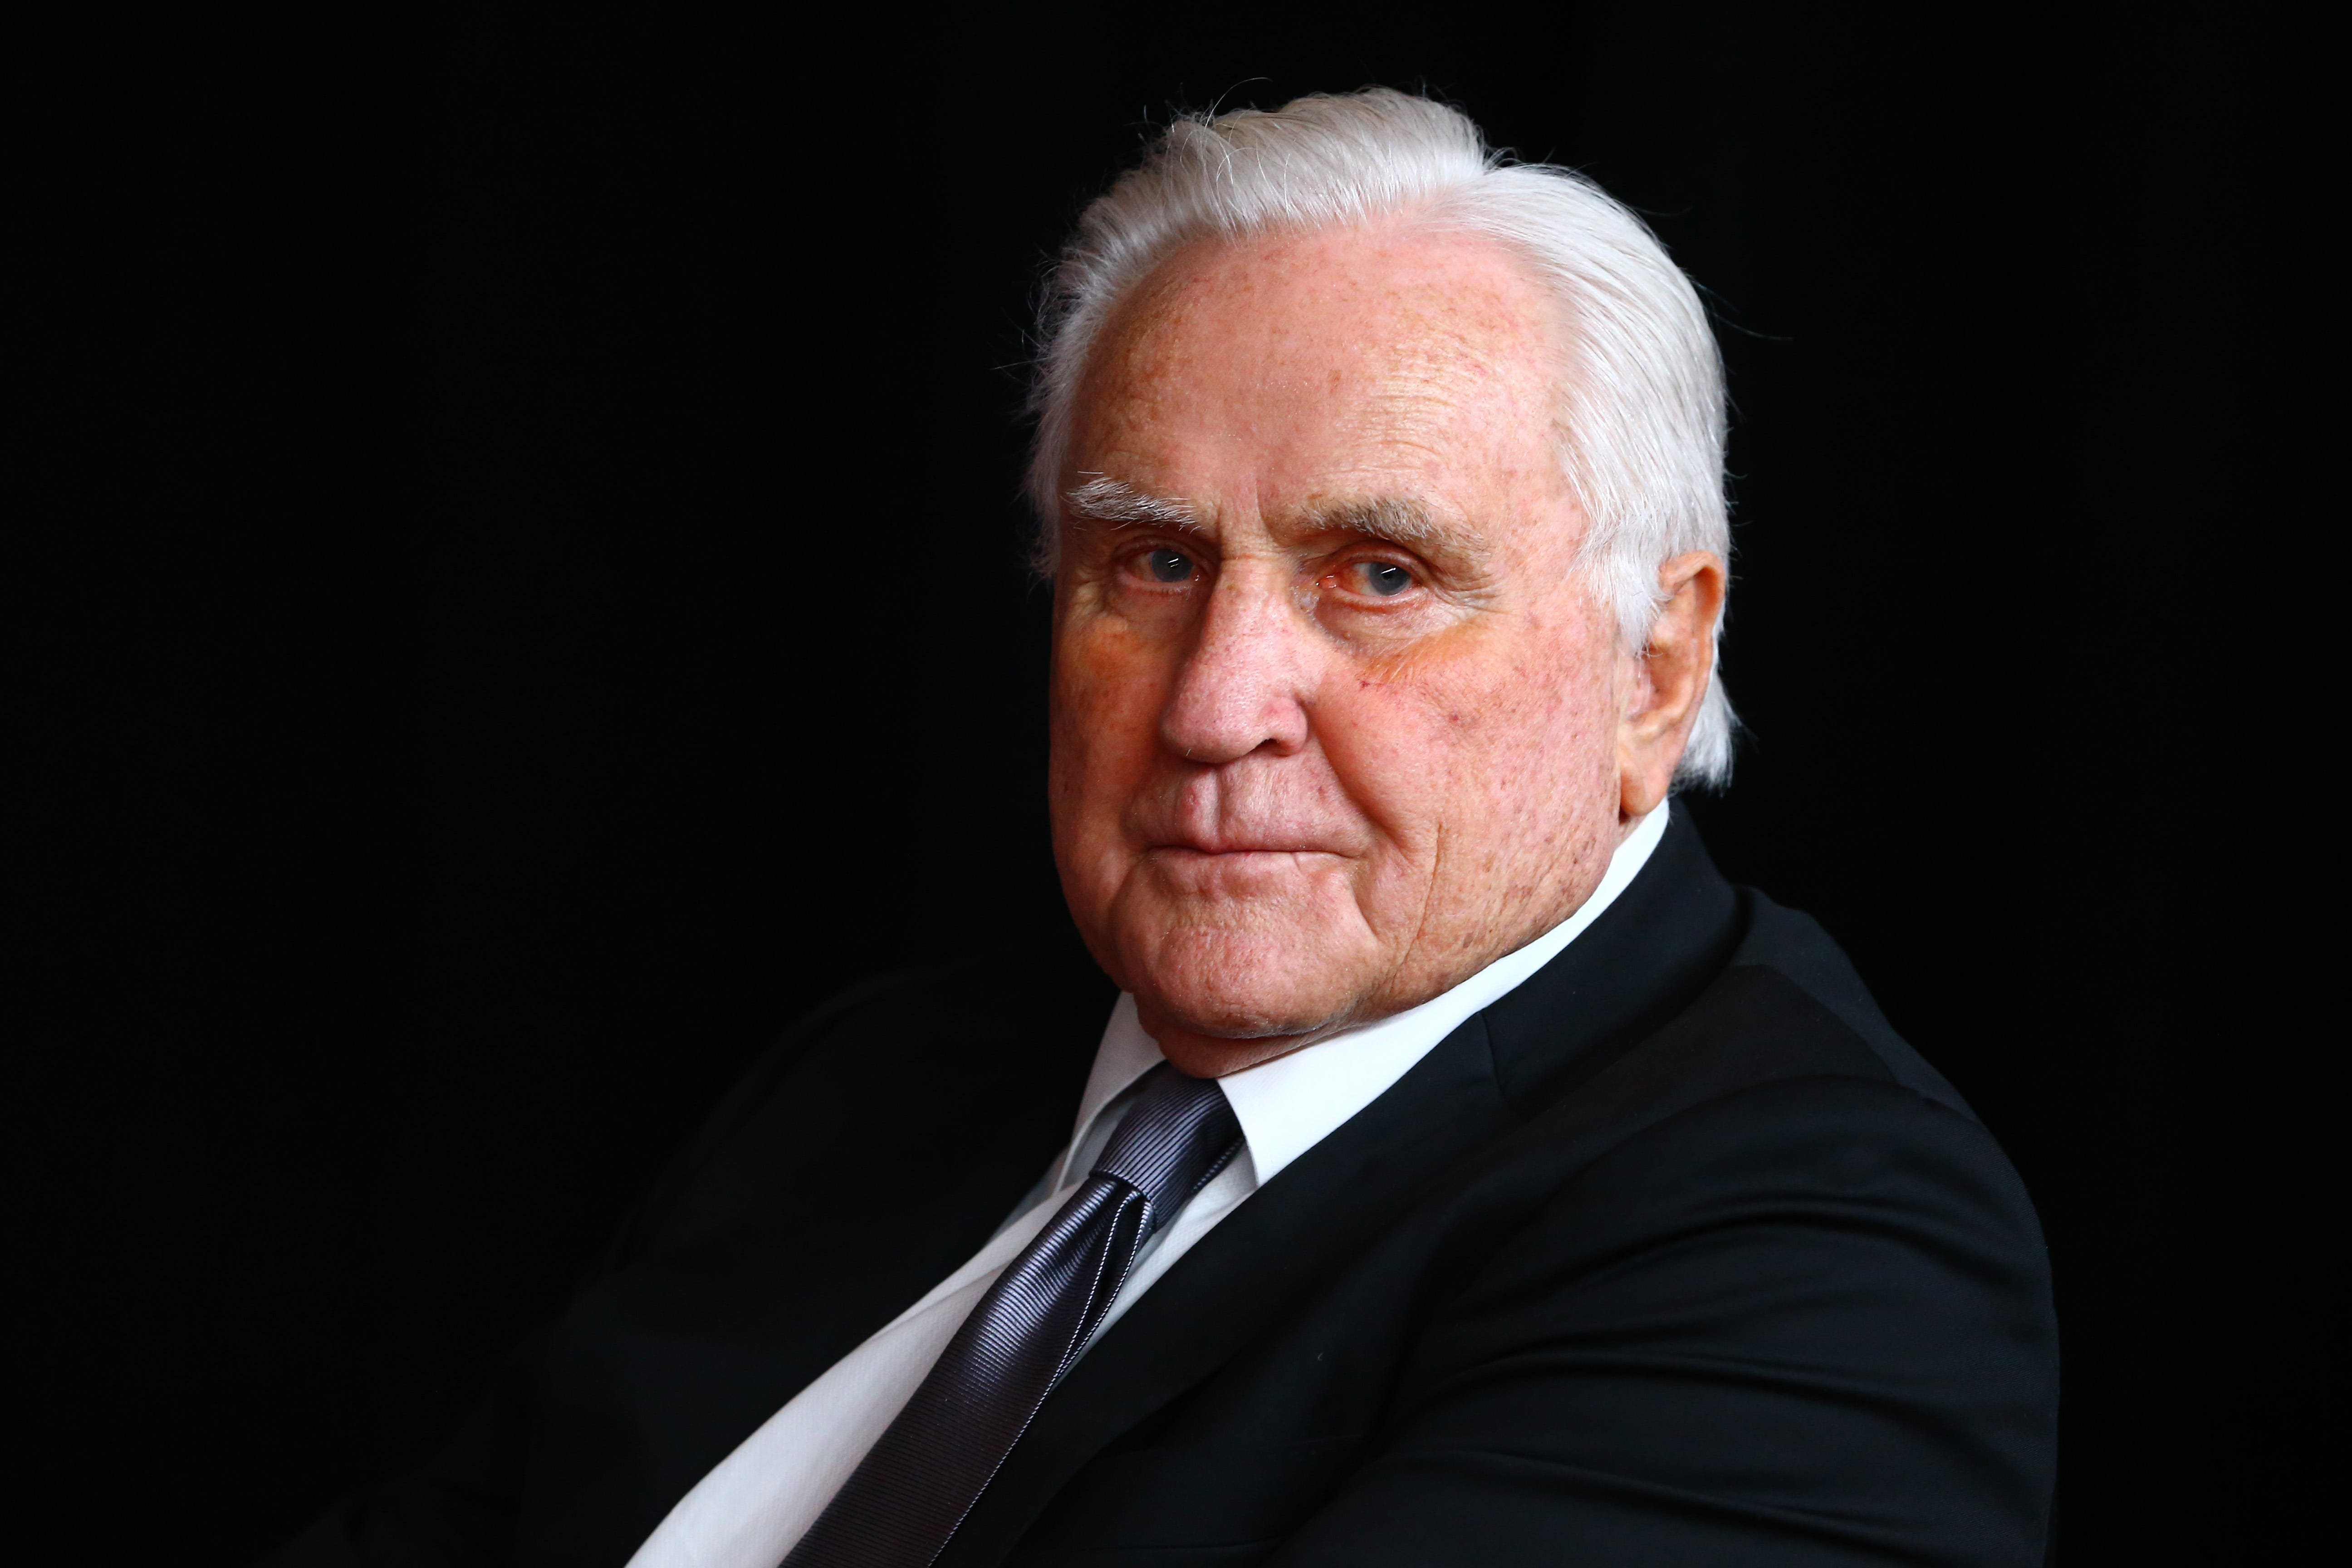 Tribute: Don Shula, winningest coach in NFL history, led Miami Dolphins to league s only unbeaten season